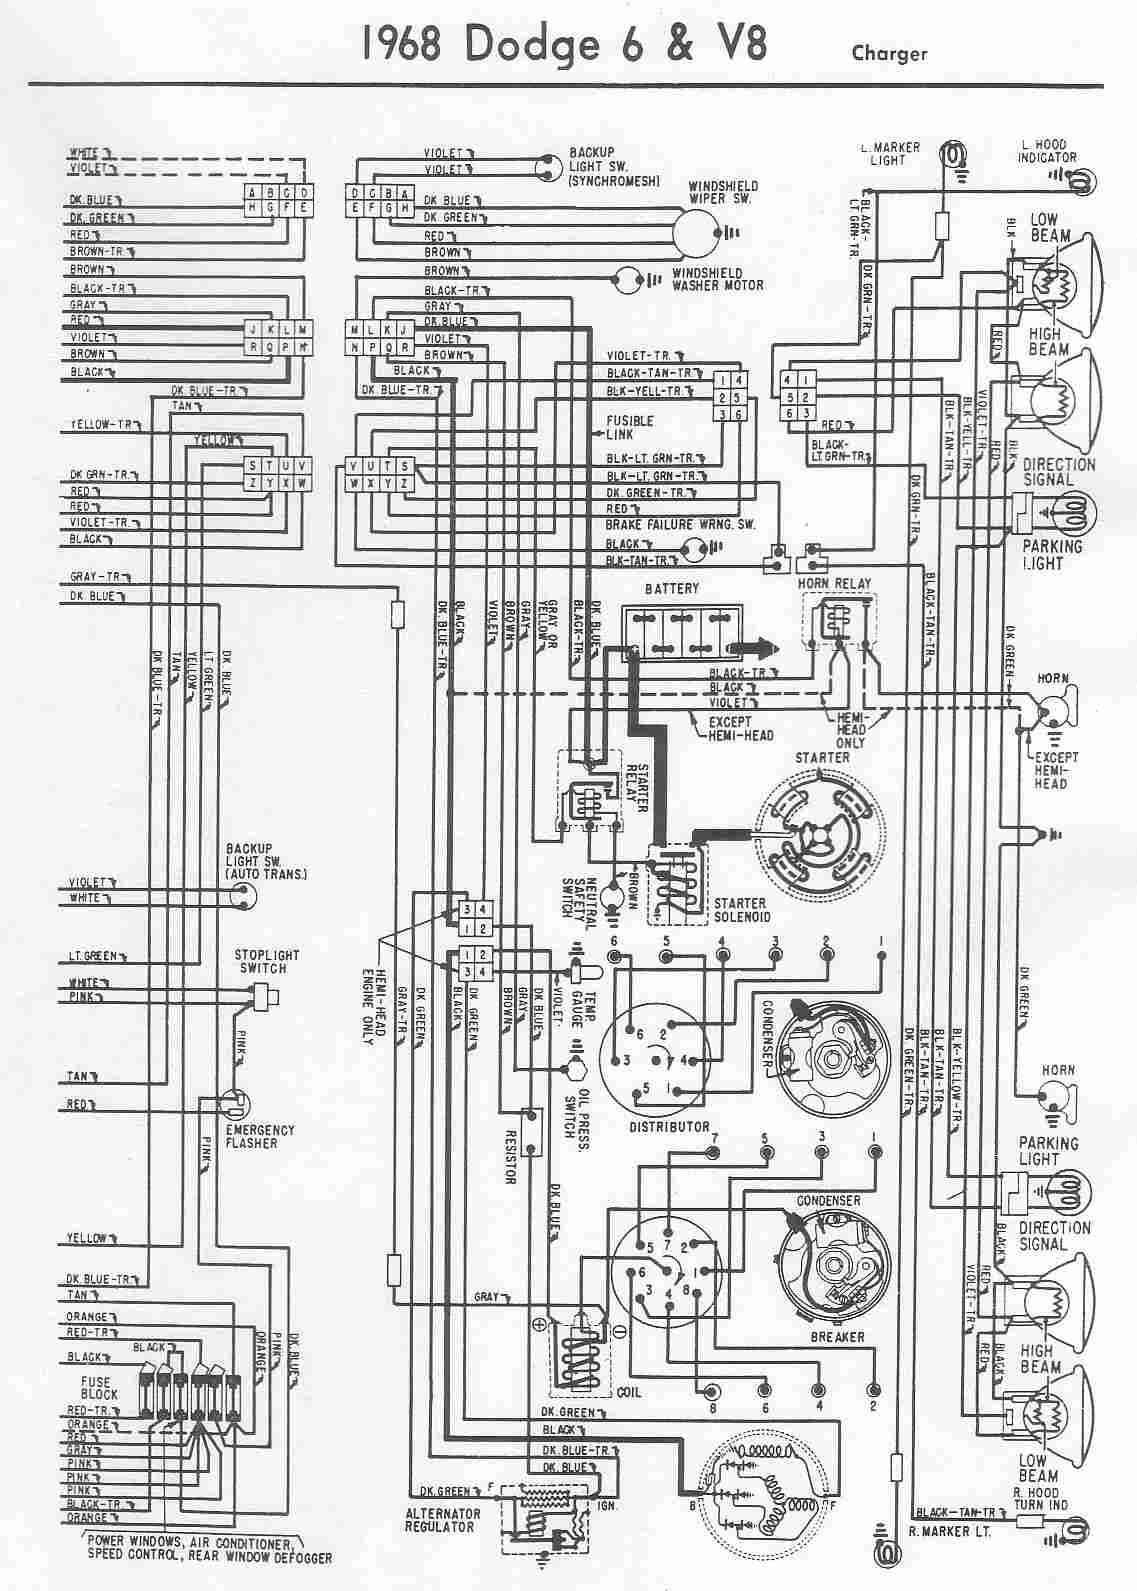 Dodge Car Manuals Wiring Diagrams Pdf Fault Codes Engine Schematics Download